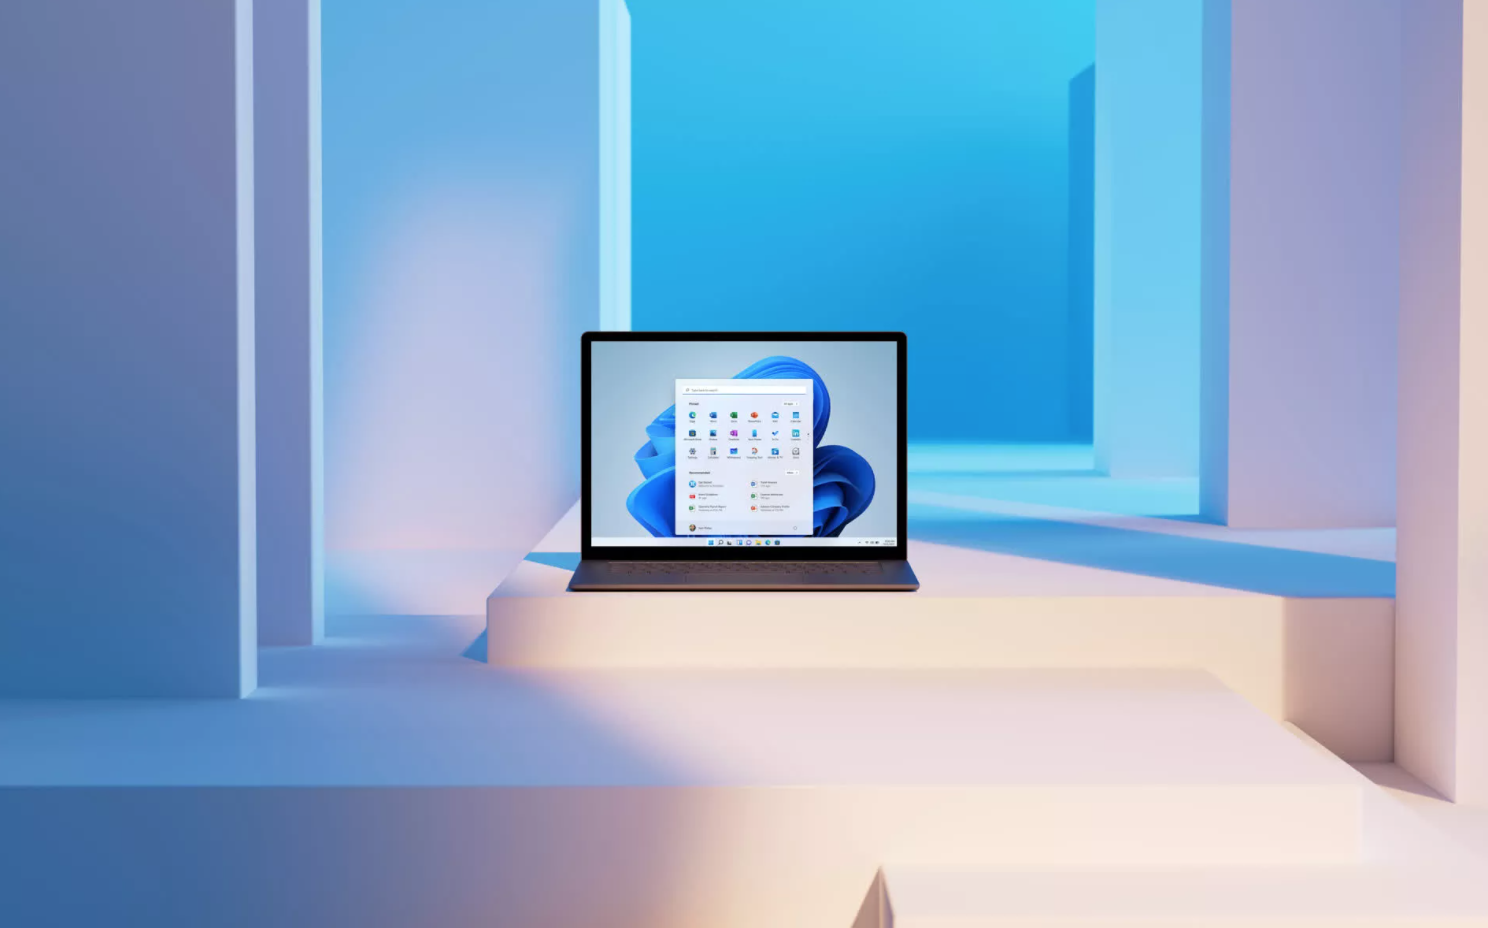 Microsoft's Windows 11 rollout starts on October 5